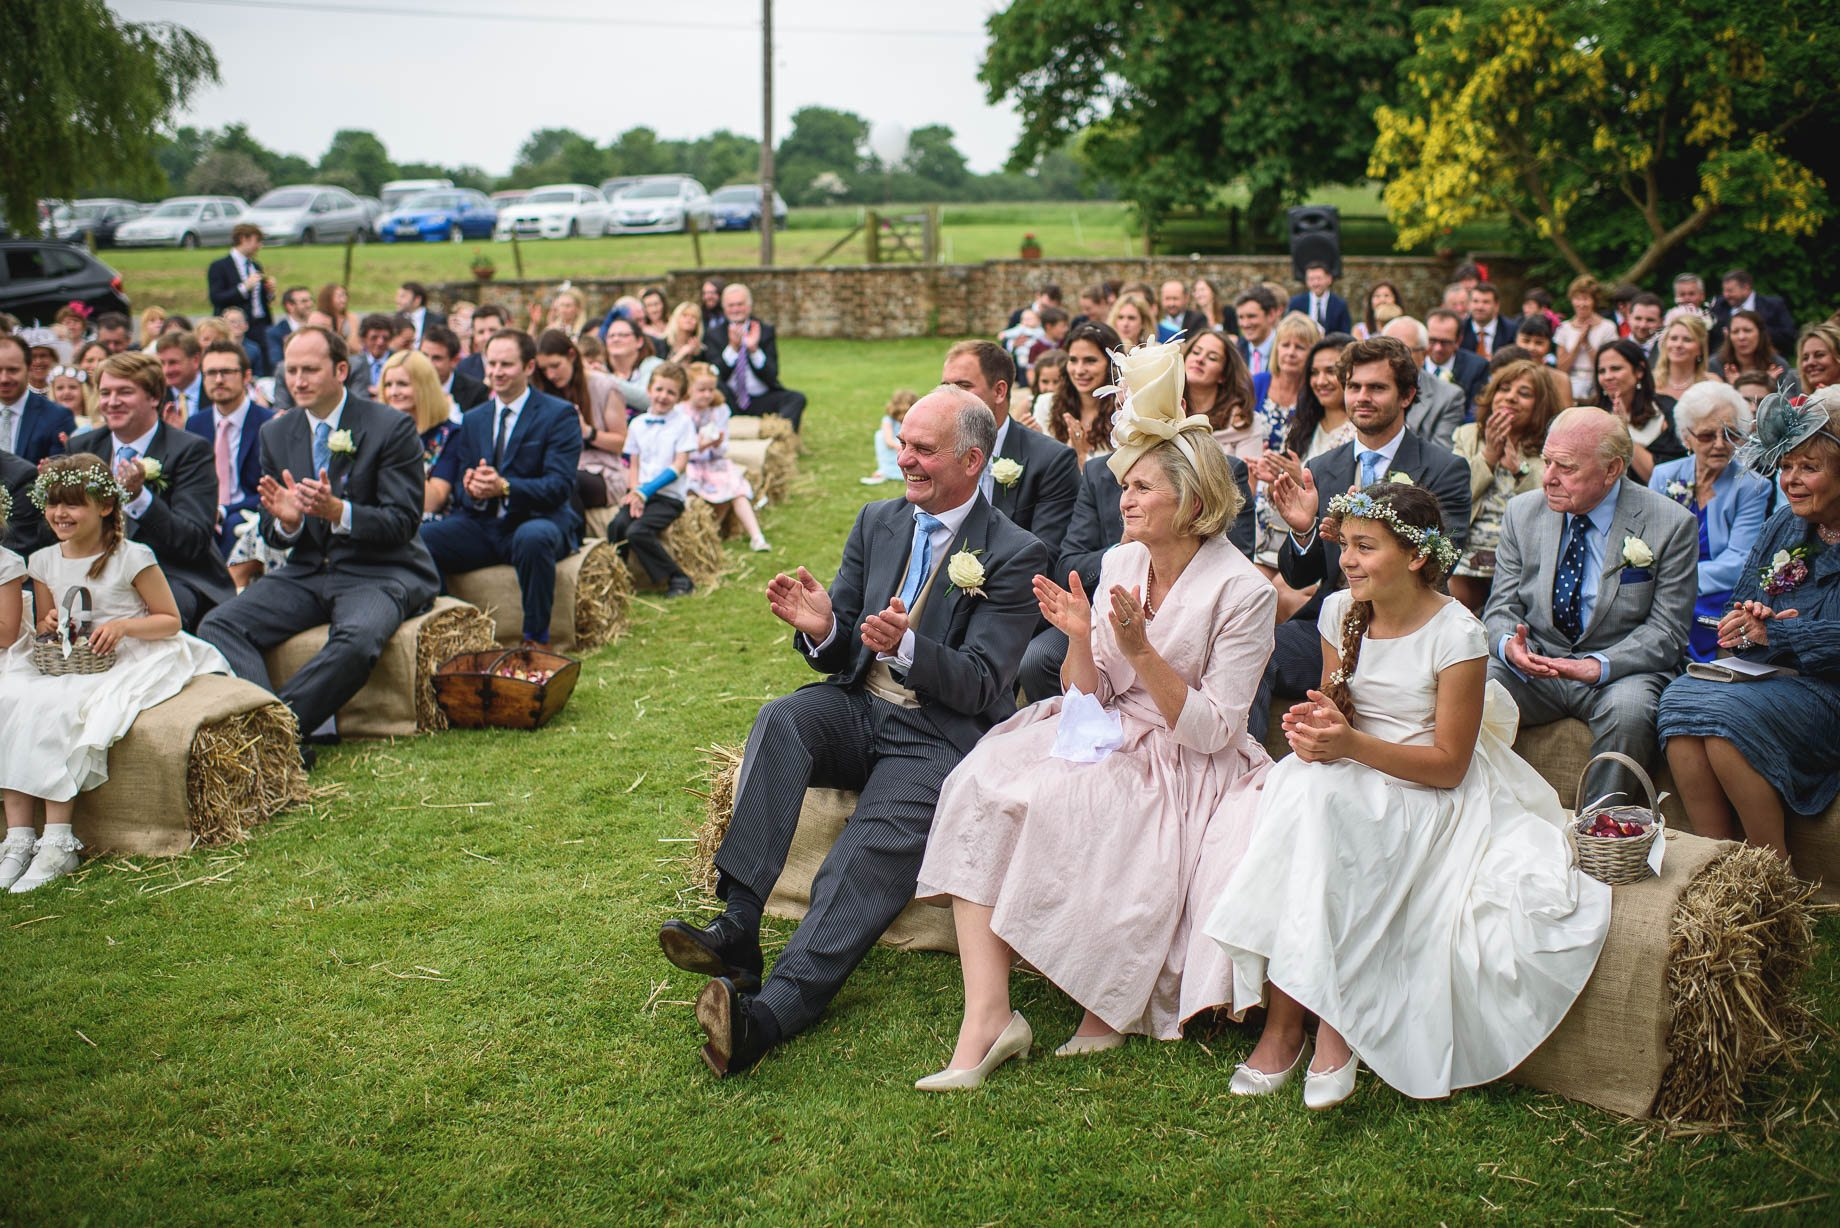 Wiltshire wedding photography by Guy Collier - Lucie and Matt (67 of 198)